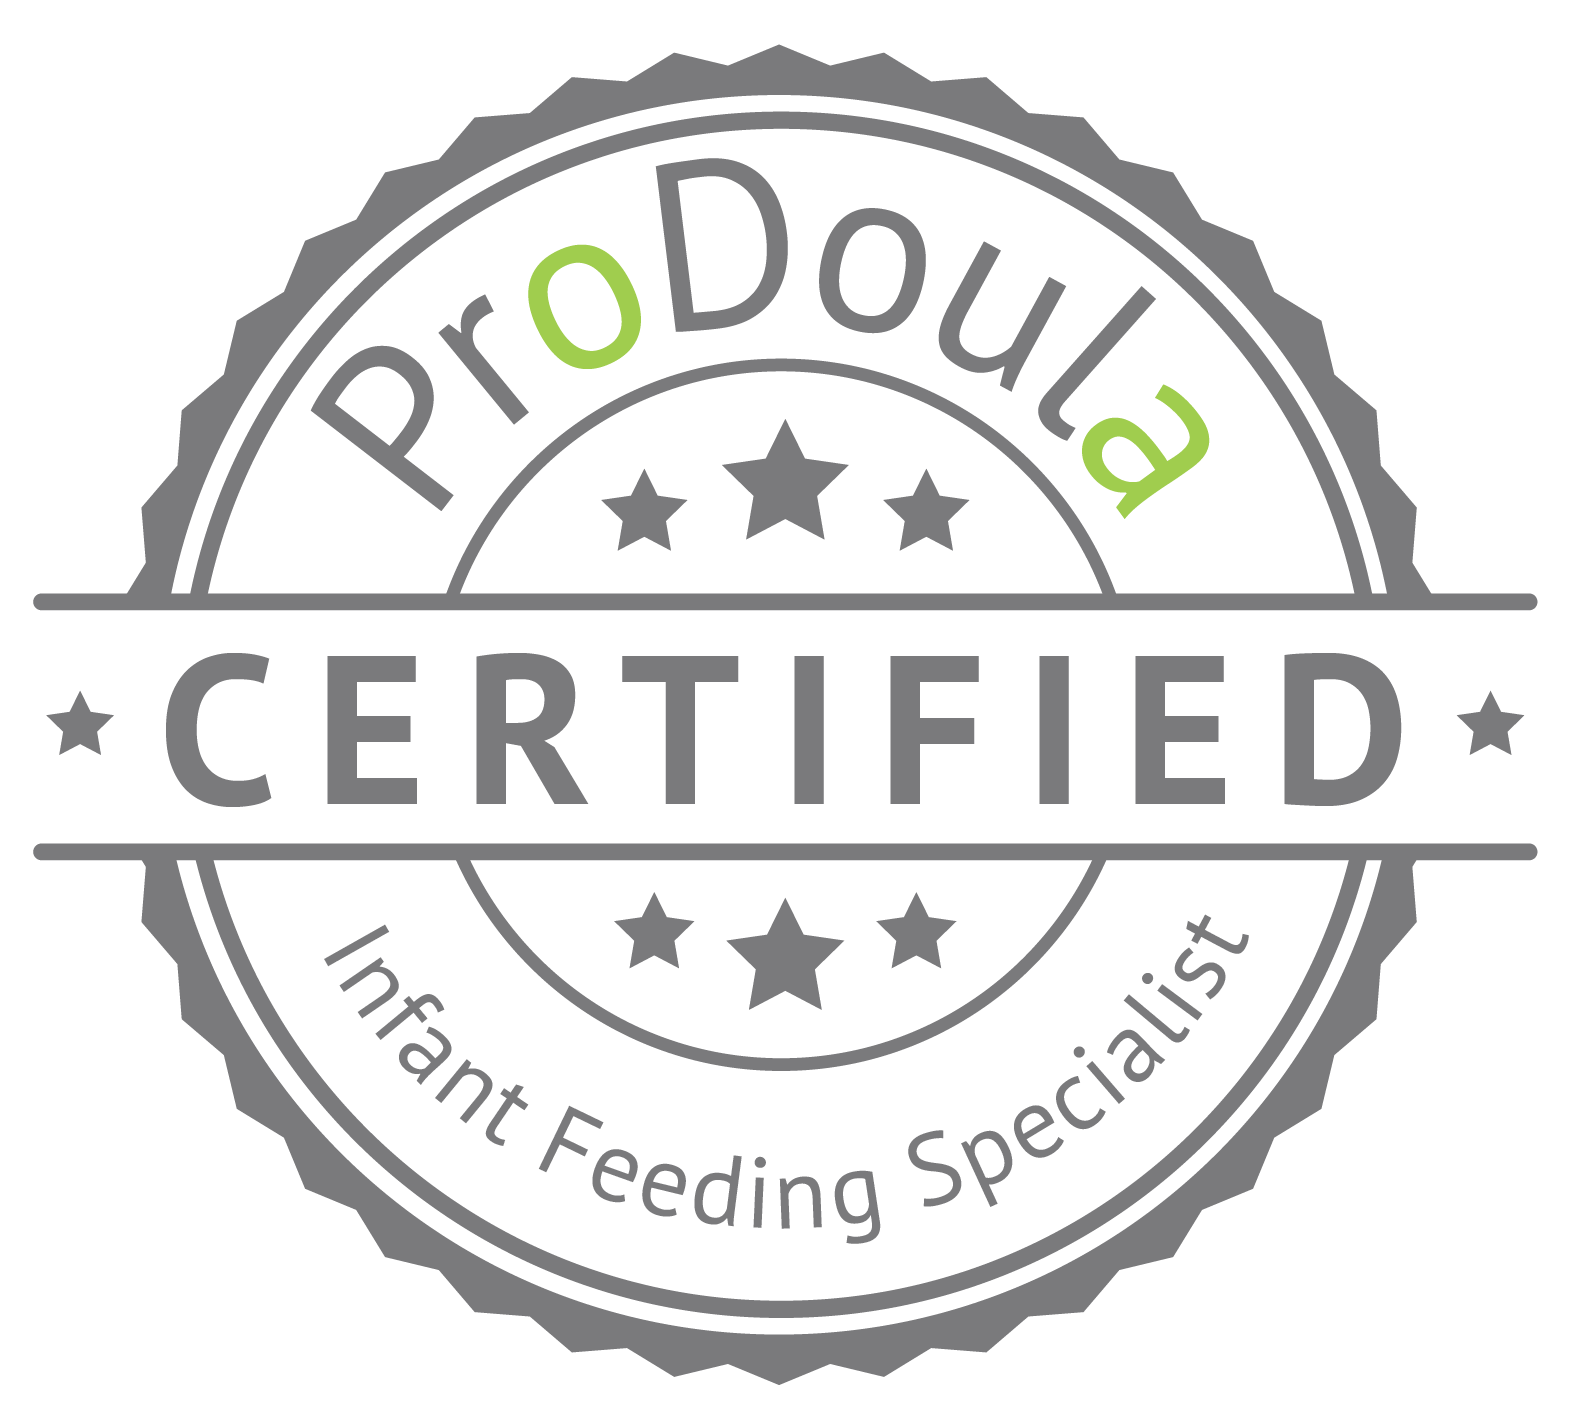 ProDoula Certified Infant Feeding Specialist Badge